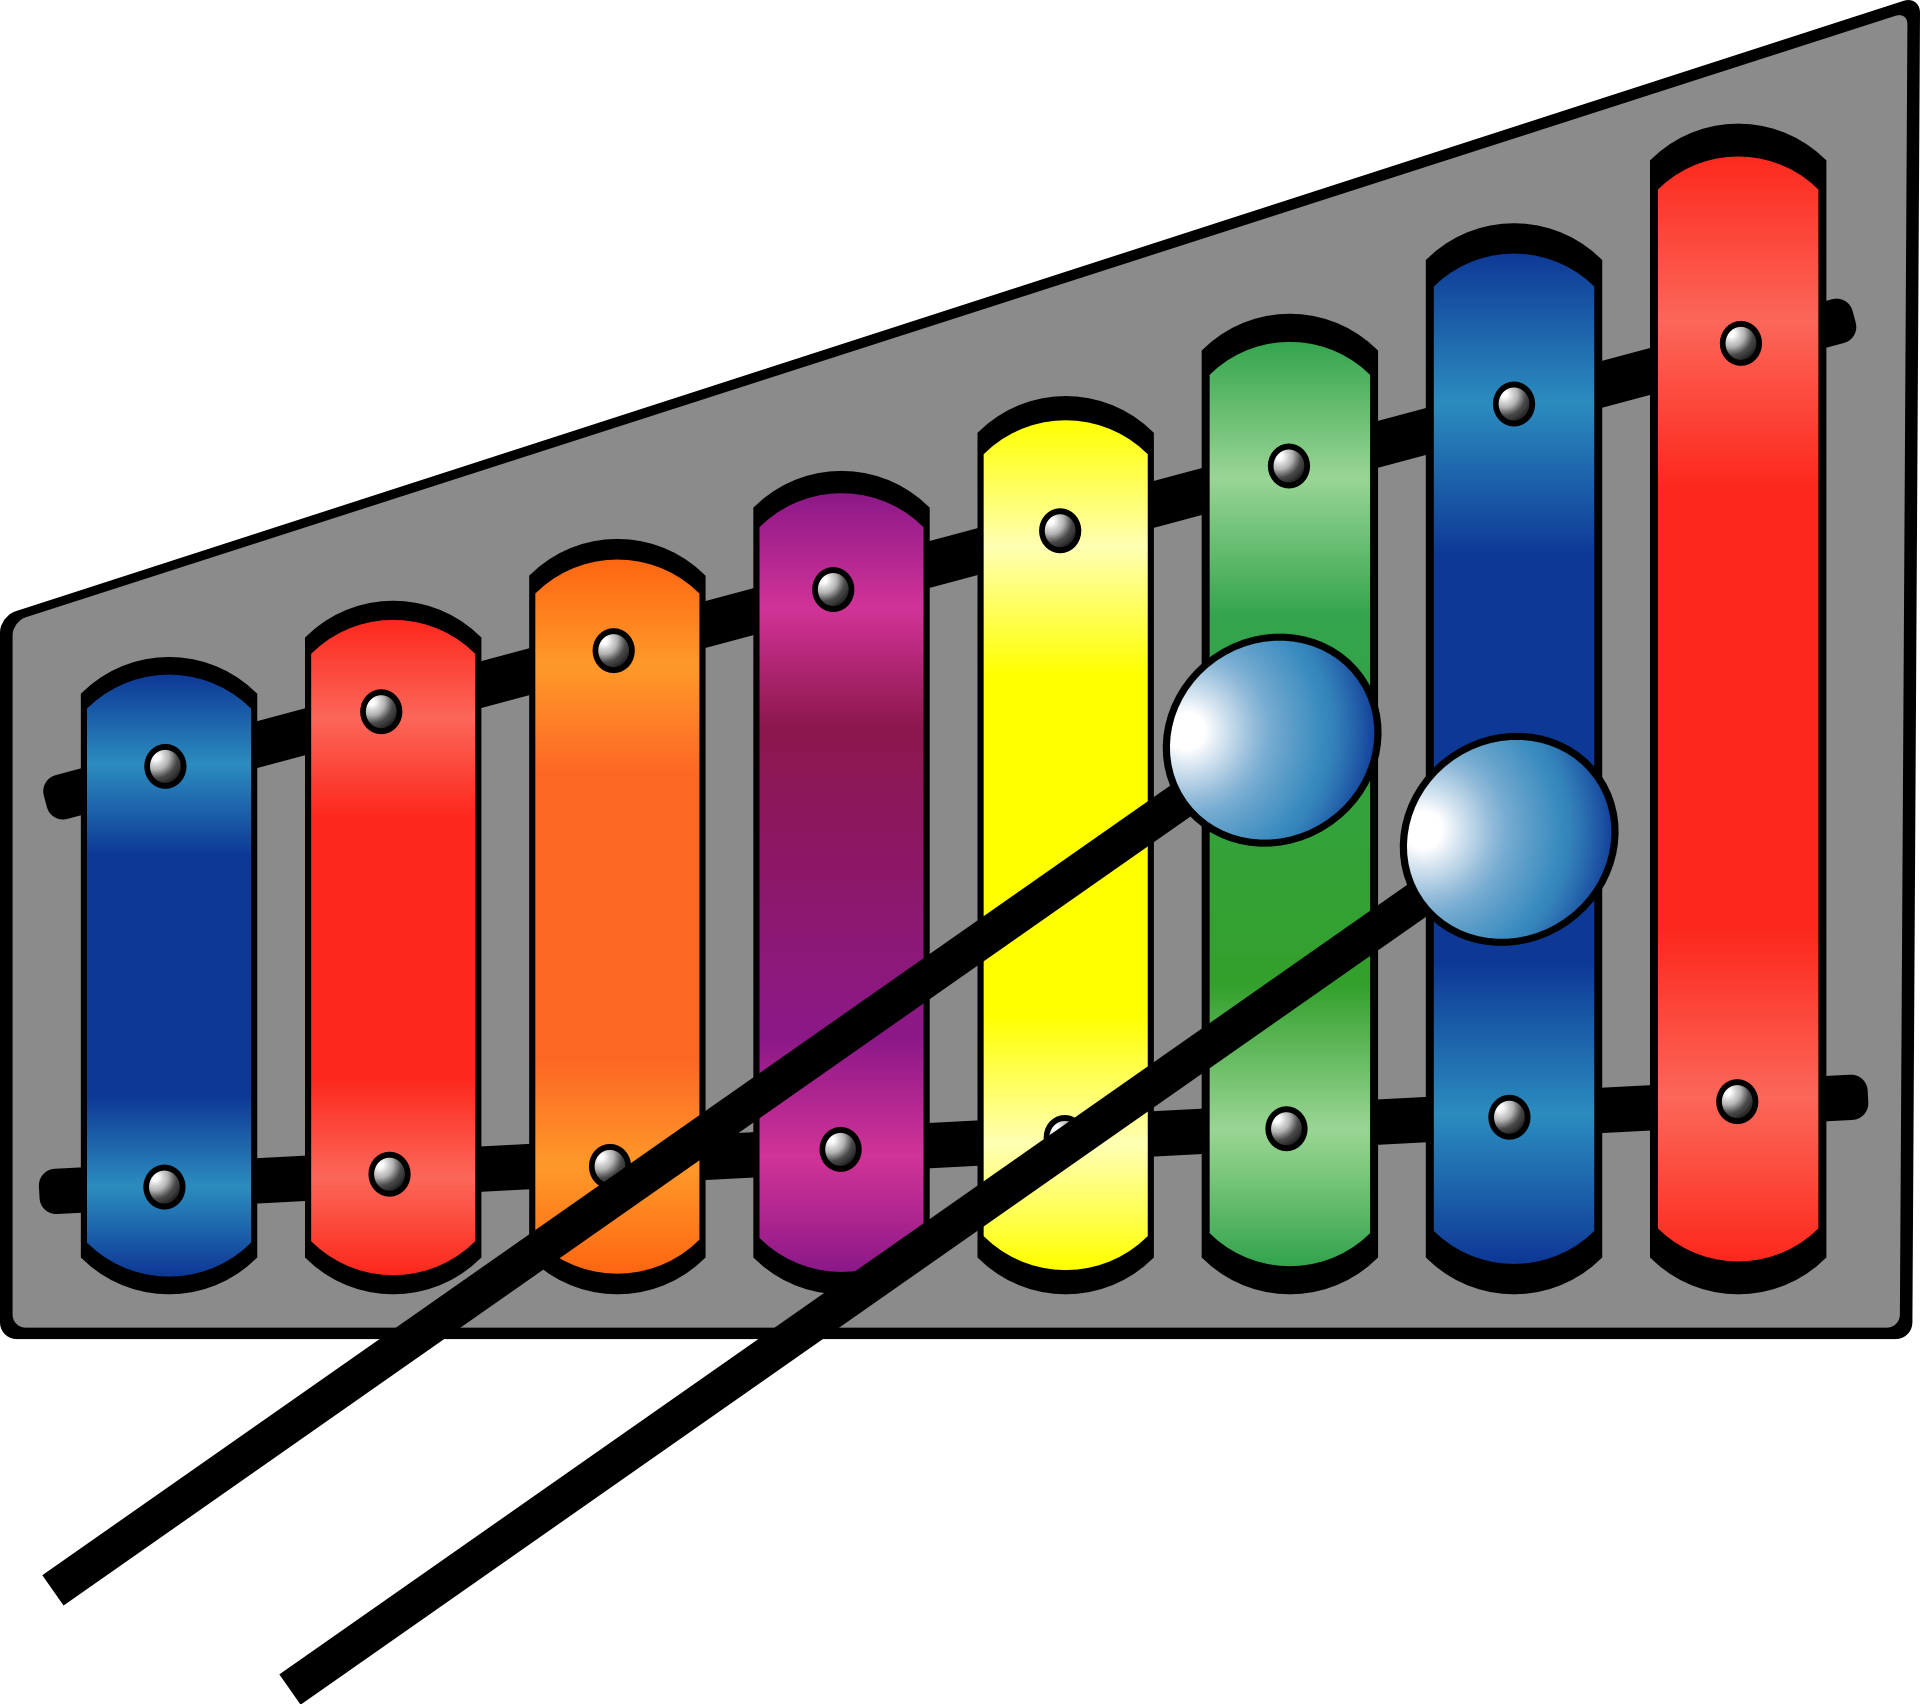 xylophone drawing musical instrument